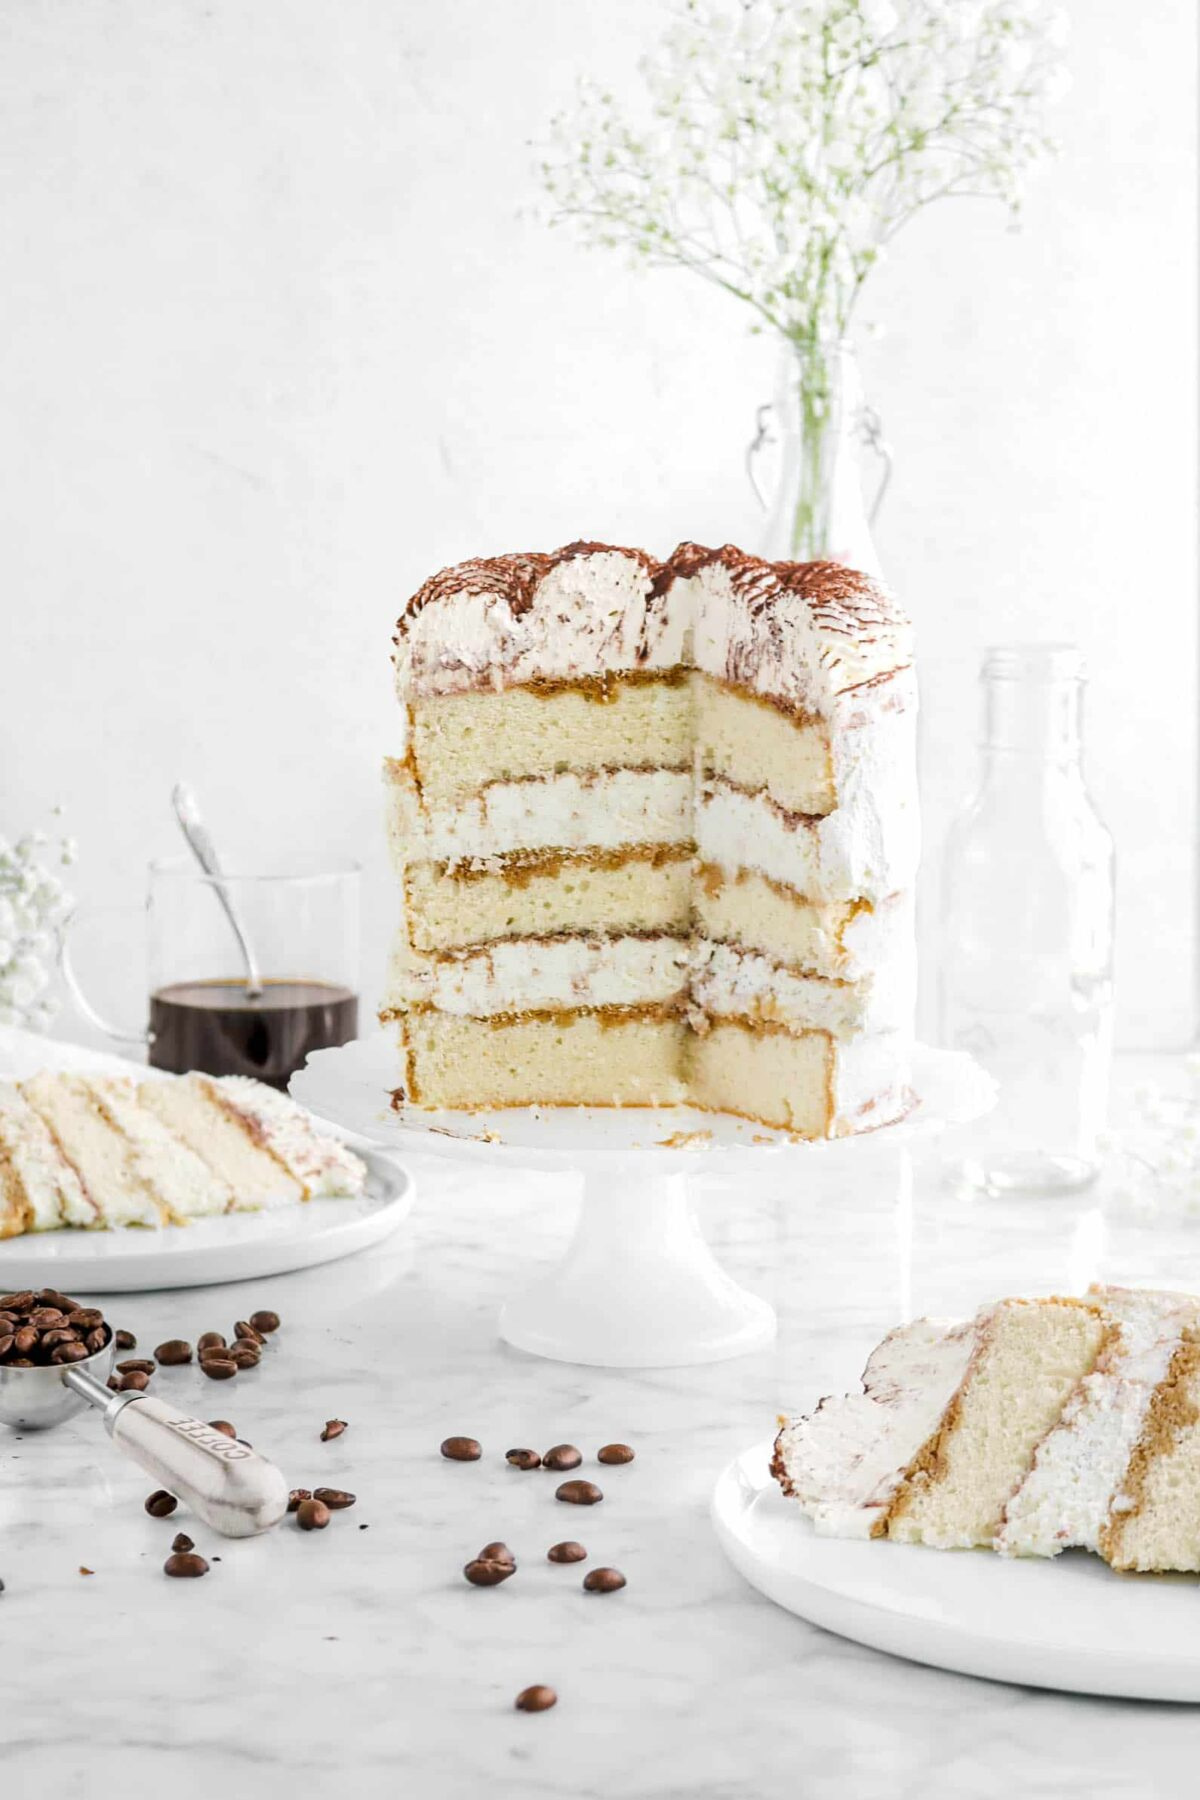 two slices of tiramisu cake on white plates in front and behind cake with coffee beans and flowers around